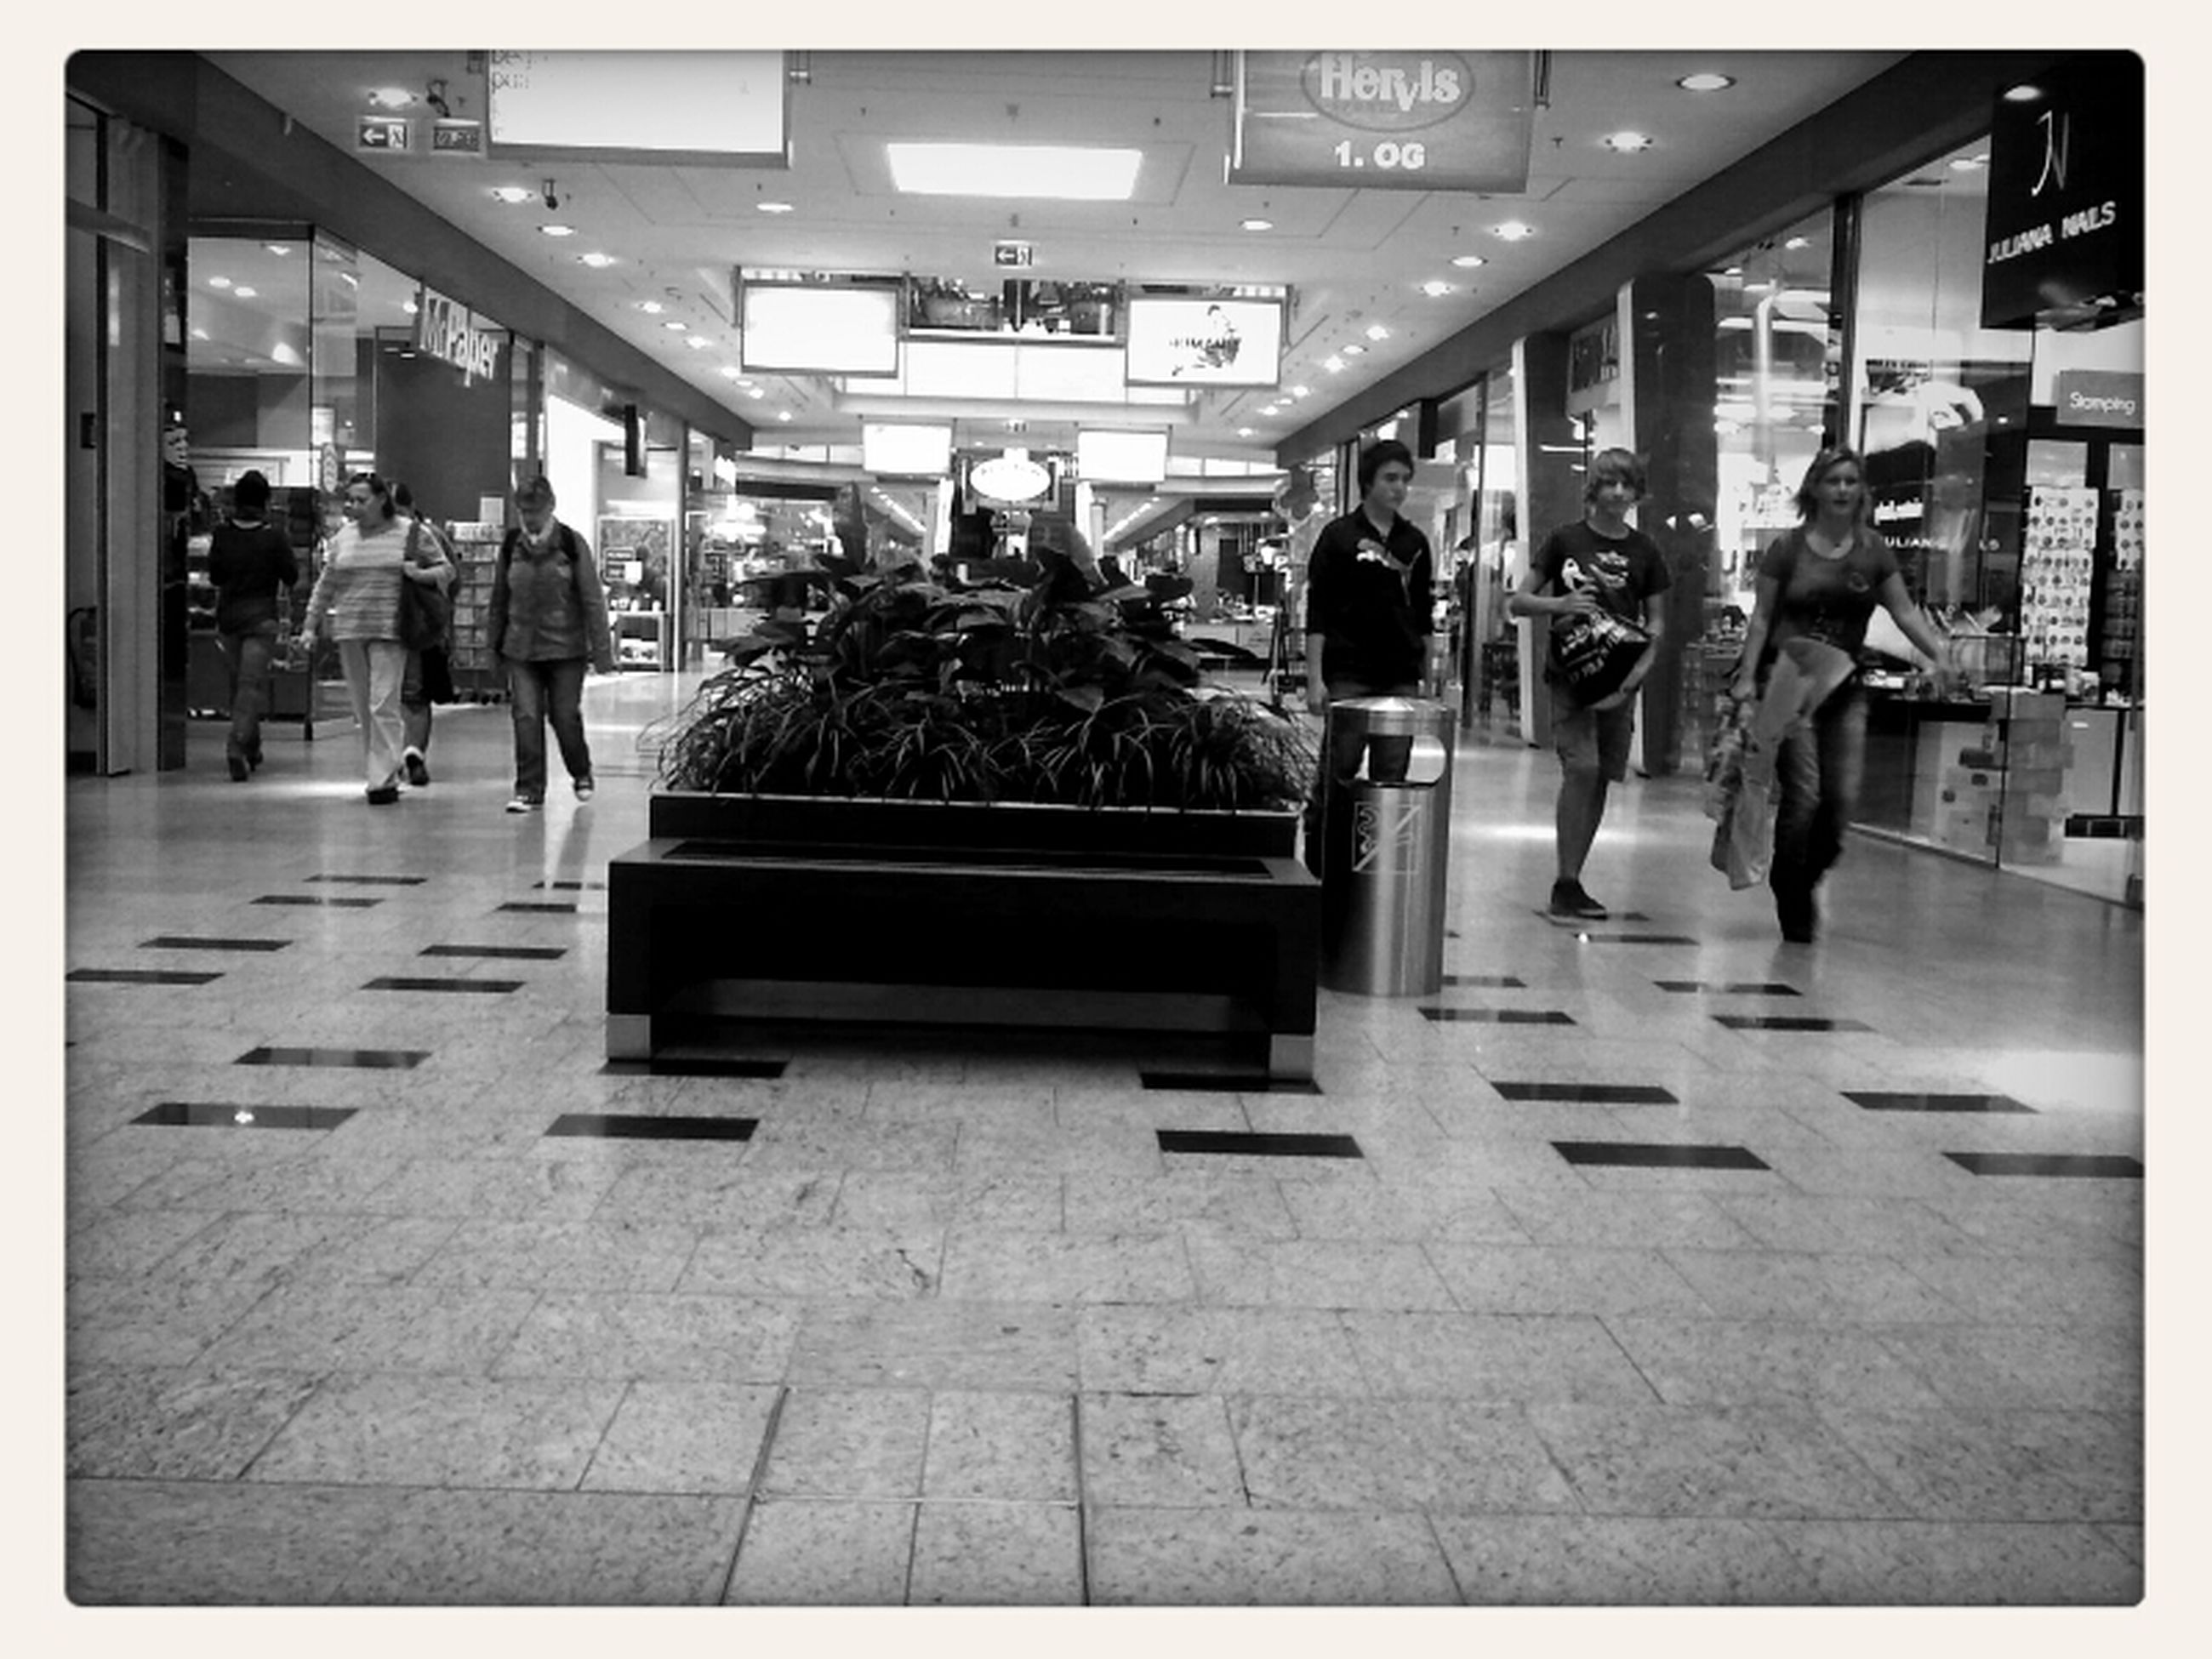 person, men, large group of people, architecture, lifestyles, built structure, transfer print, walking, city, city life, building exterior, indoors, leisure activity, shopping, retail, tiled floor, full length, auto post production filter, glass - material